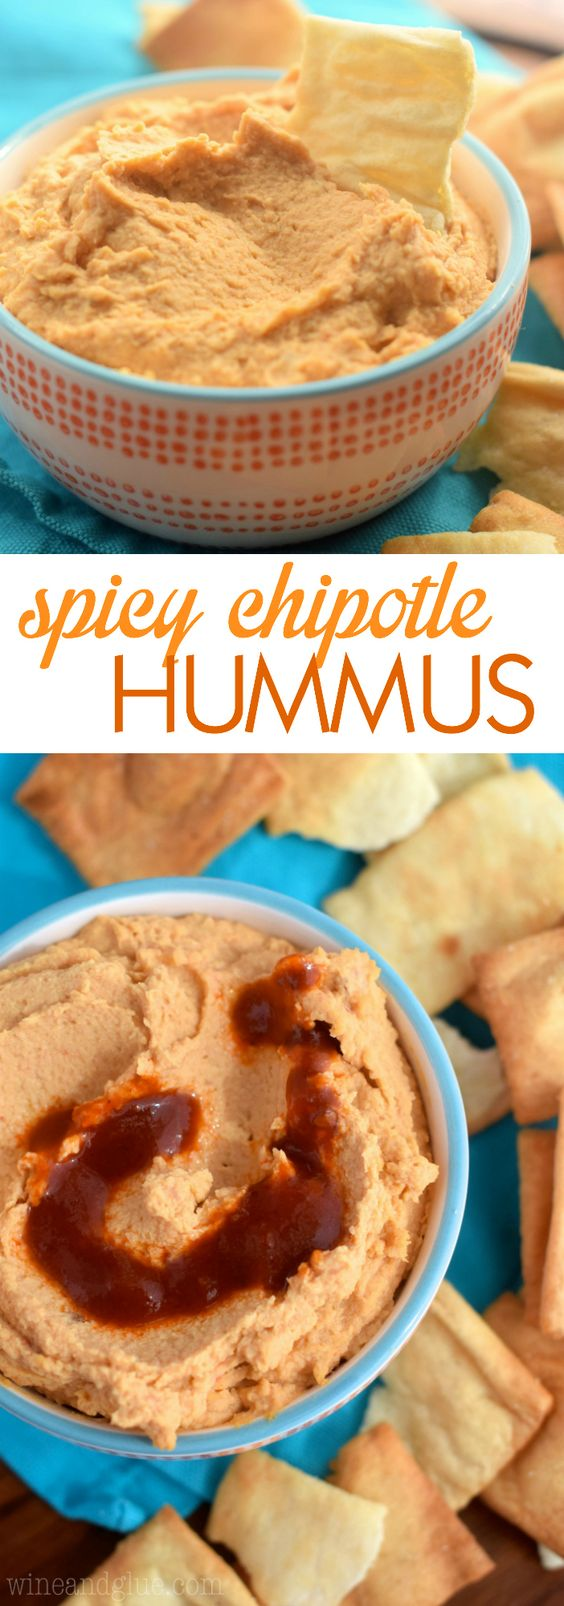 chipotle hummus recipe hummus spicy and more chipotle hummus spicy ...